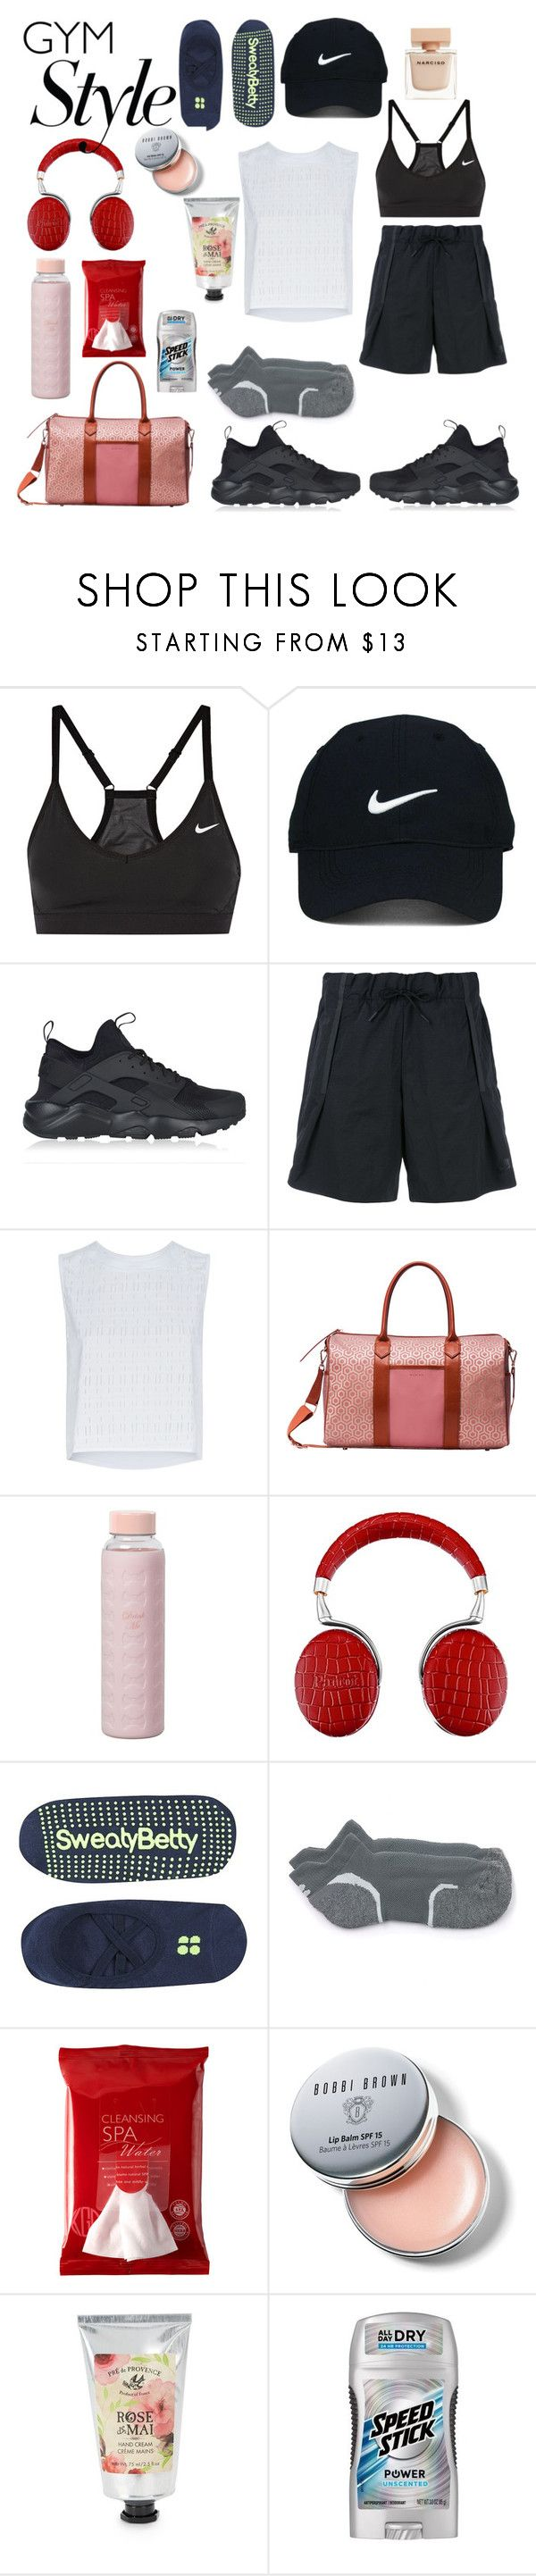 """""""Untitled #876"""" by adda21 ❤ liked on Polyvore featuring NIKE, Nike Golf, Under Armour, Ted Baker, Parrot, Sweaty Betty, Koh Gen Do, Bobbi Brown Cosmetics, Pré de Provence and Narciso Rodriguez"""